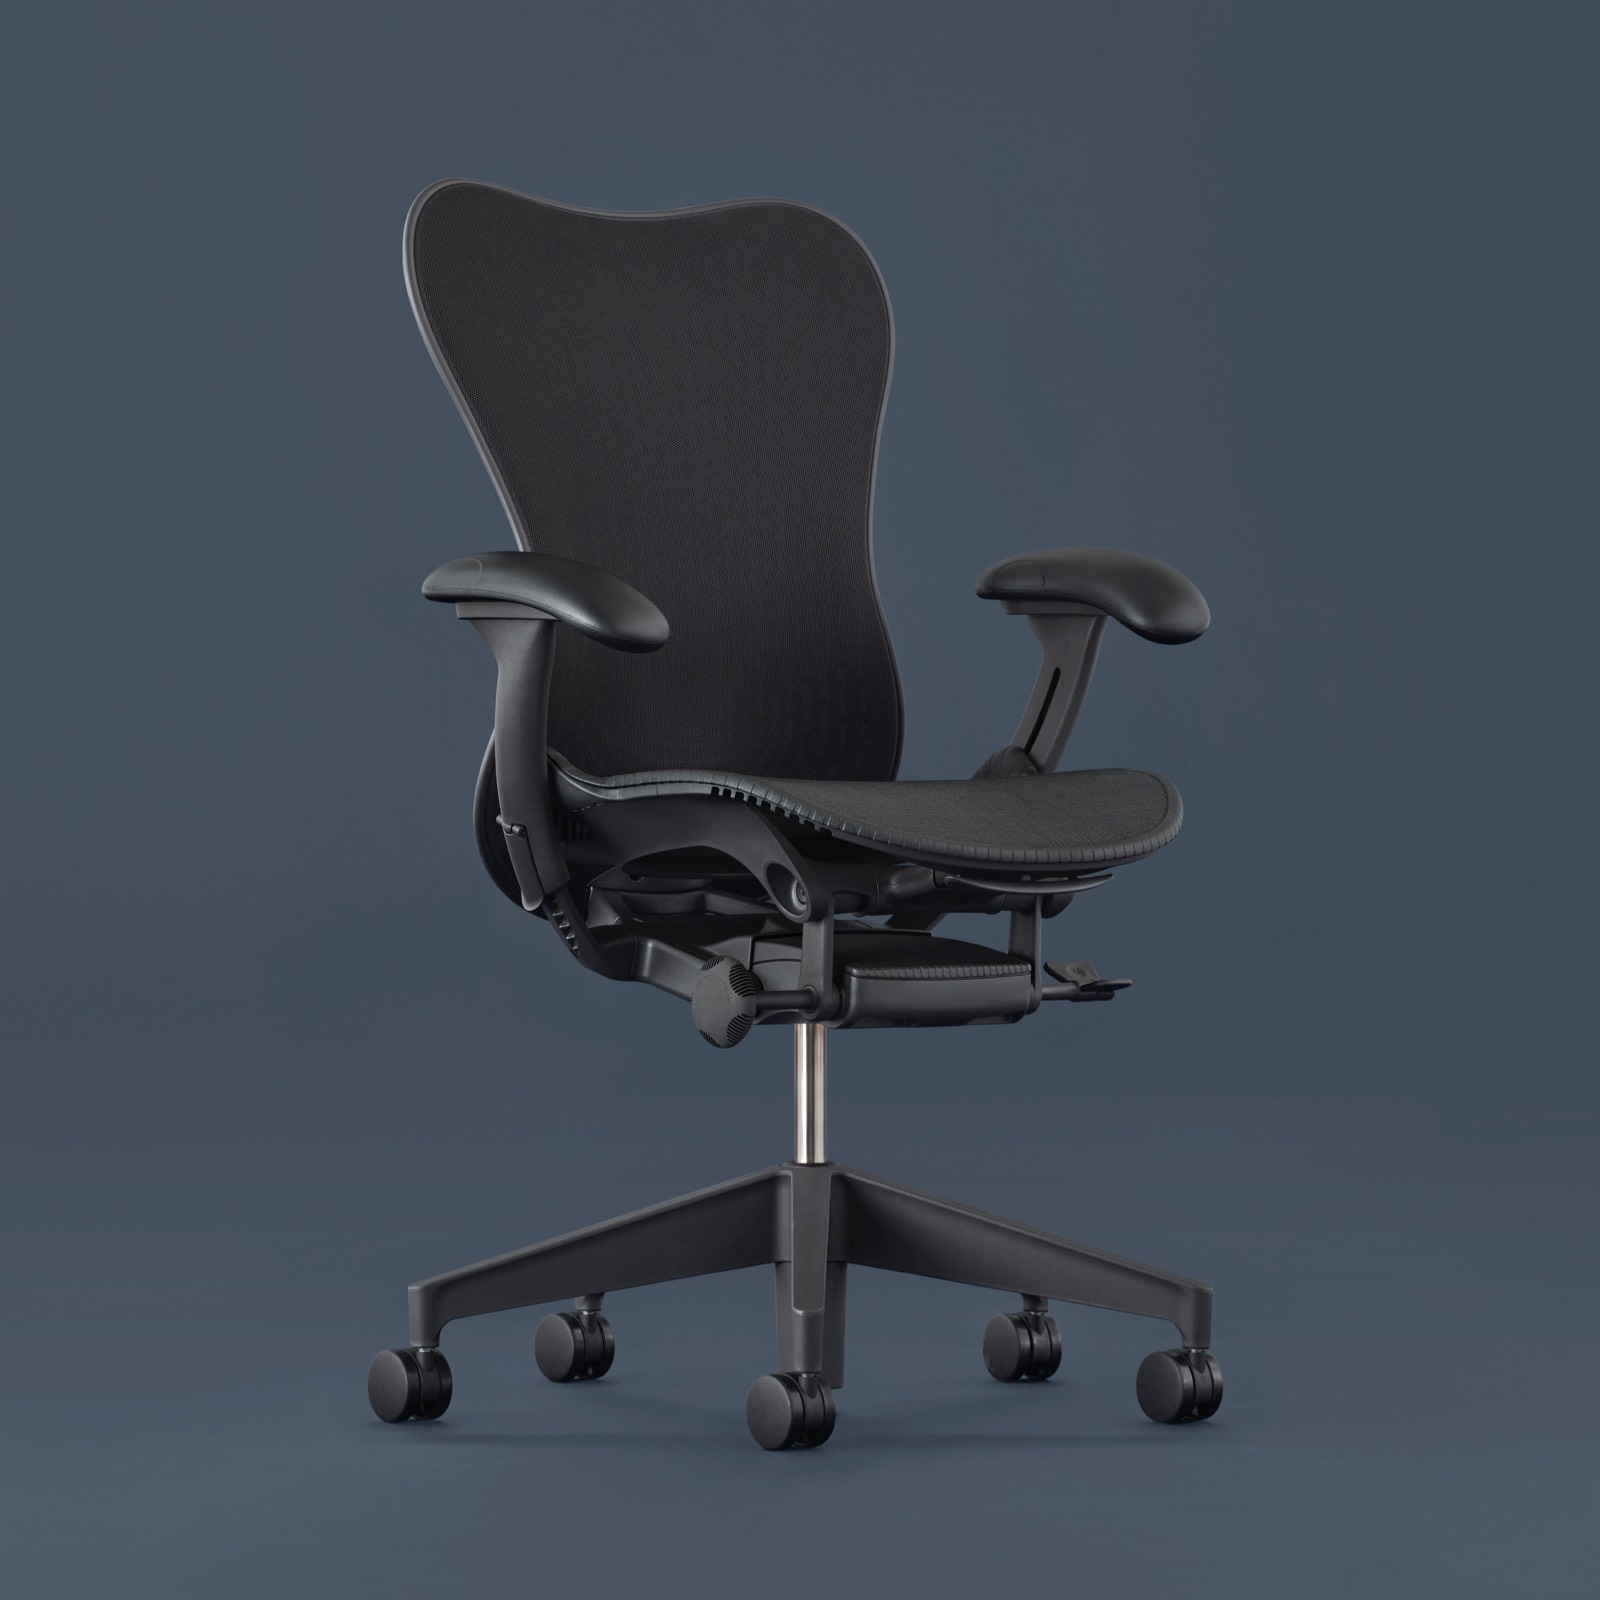 A full view of the Mirra 2 Chair swiveled 45 degrees to the right.